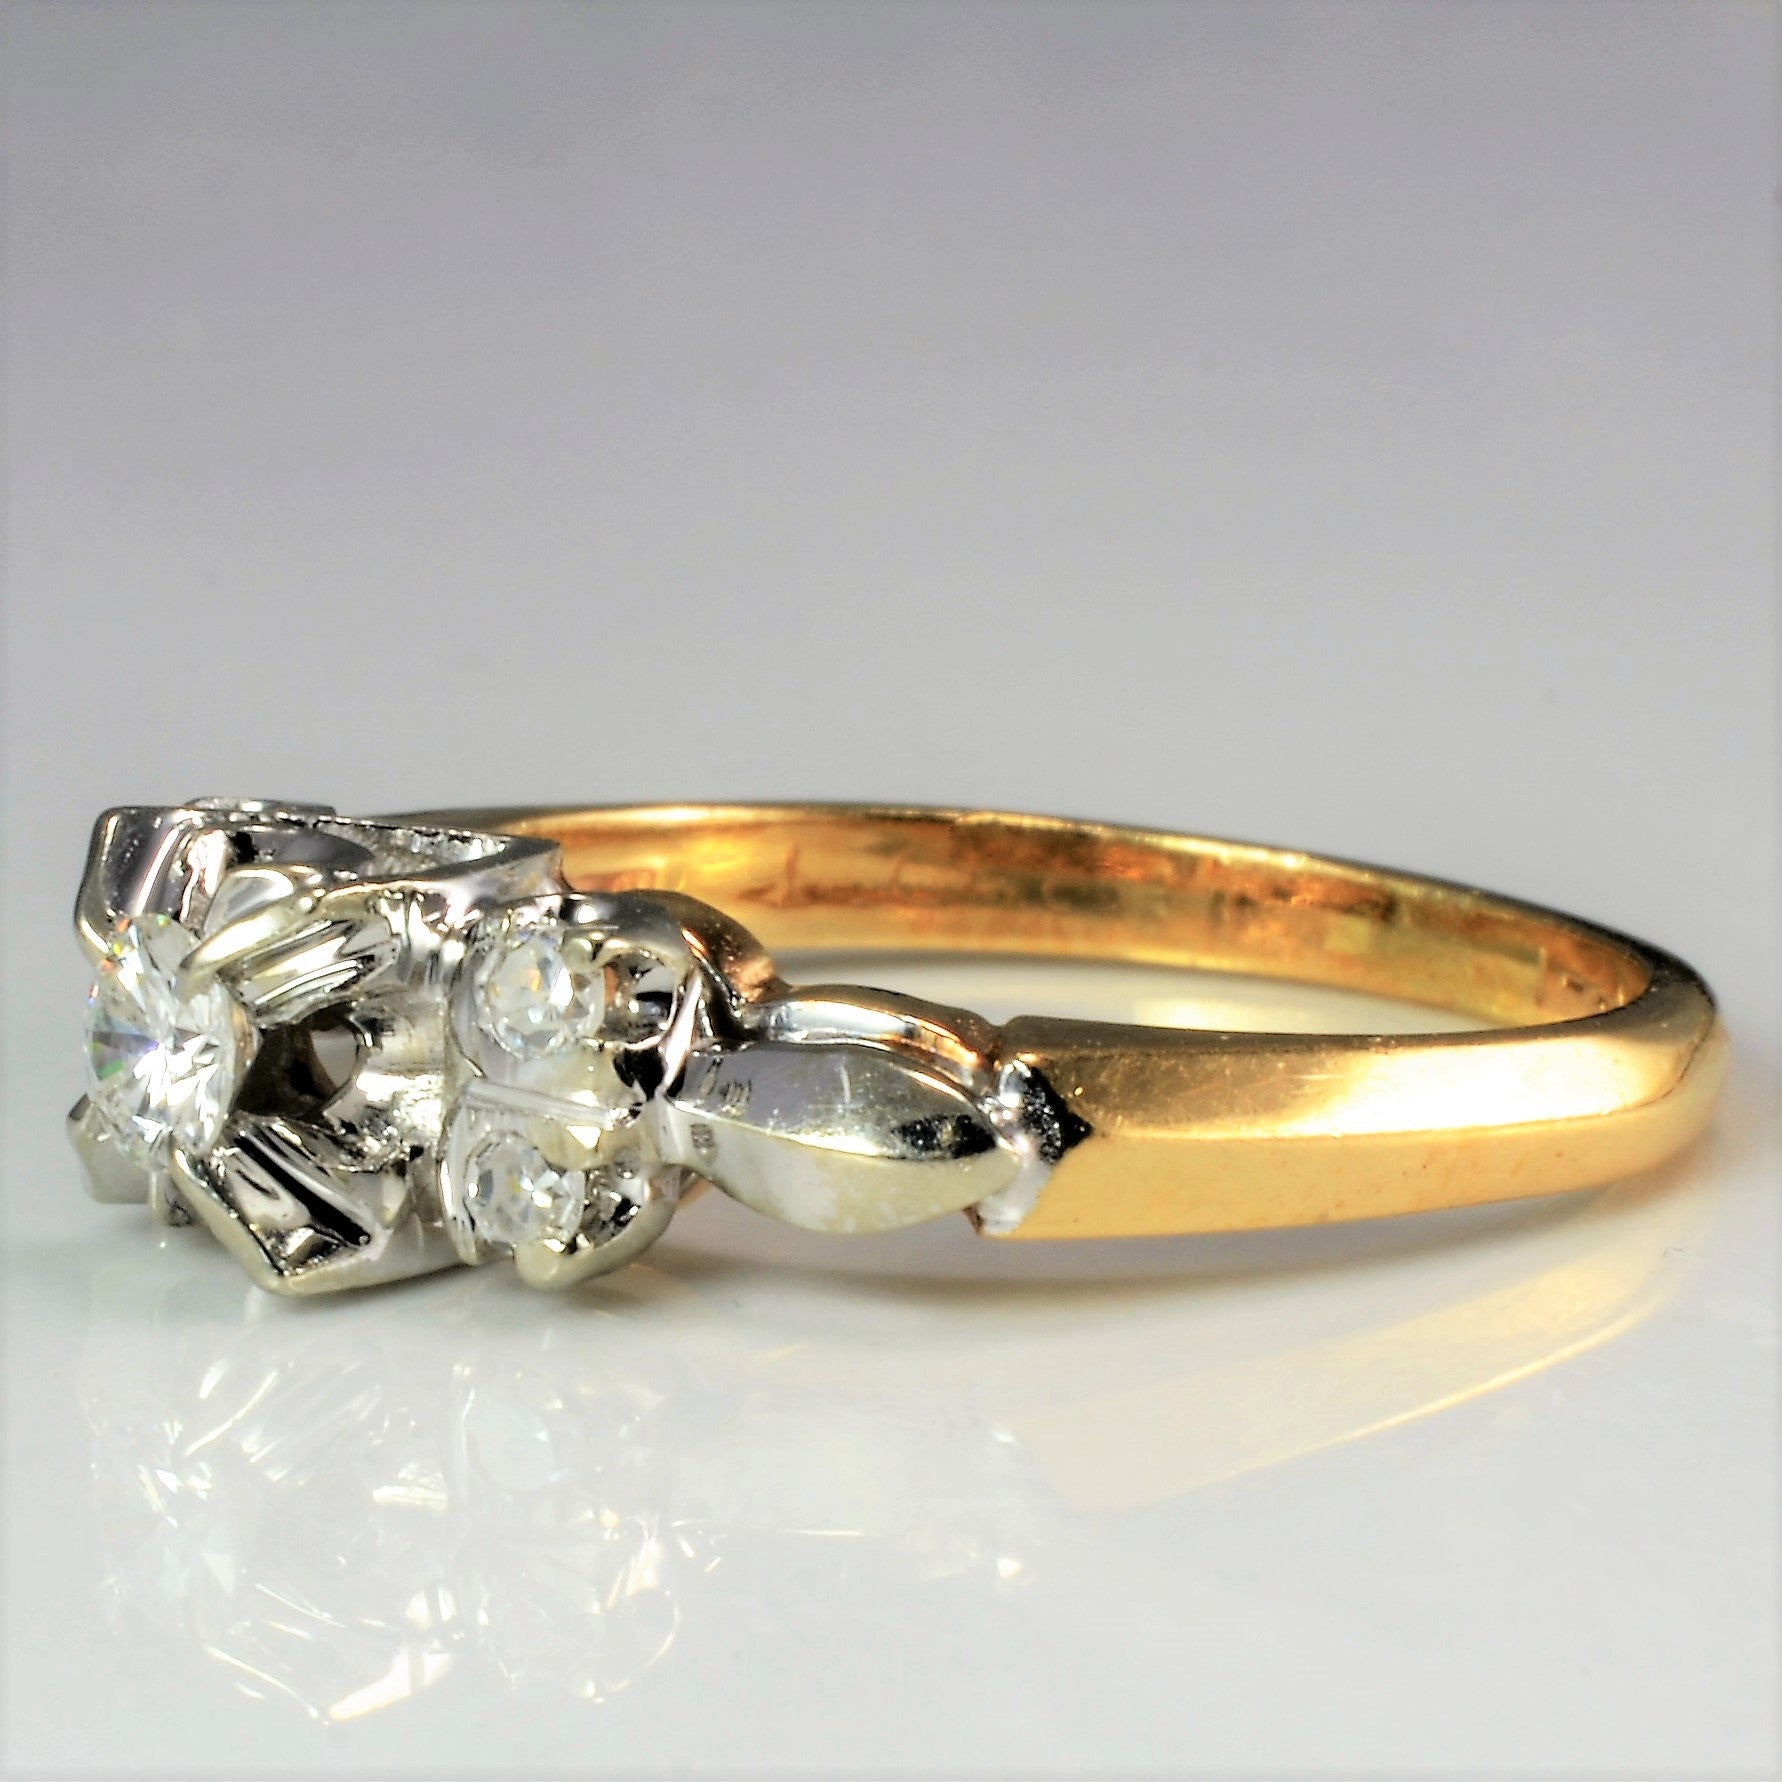 Retro Two Tone Gold Diamond Ring | 0.17 ctw, SZ 5.5 |